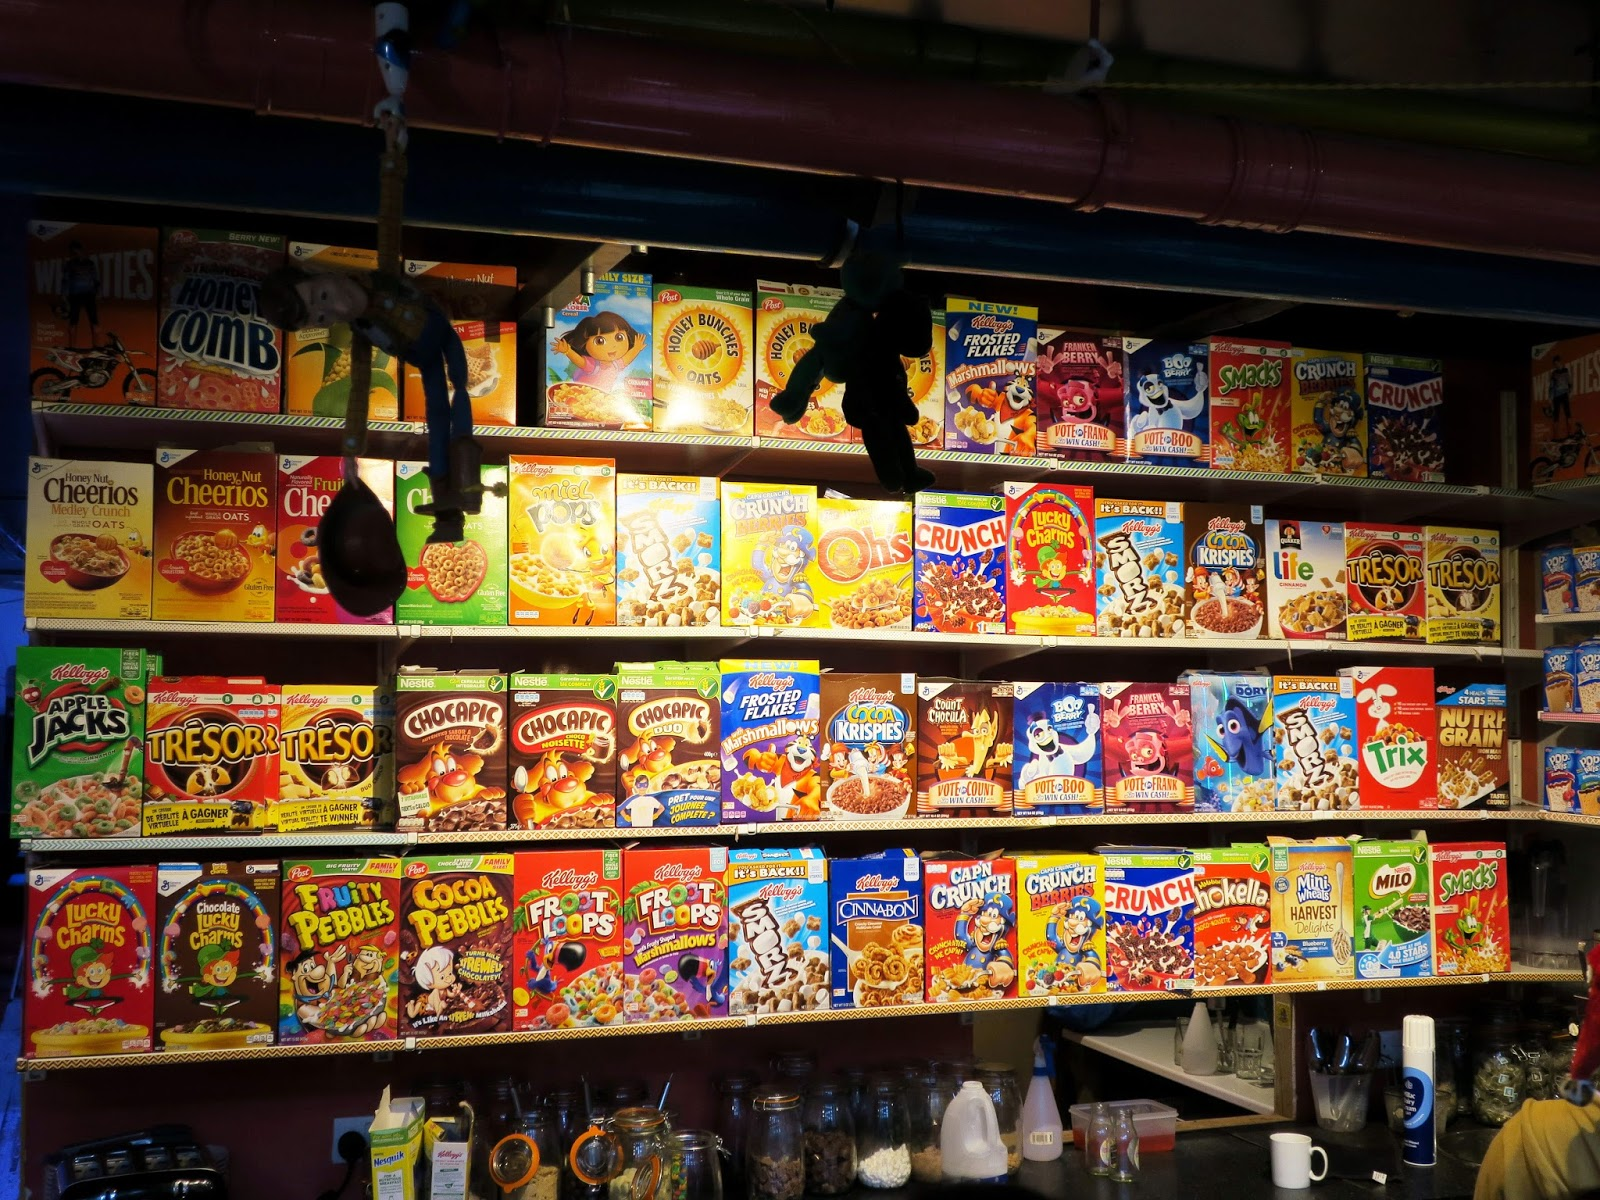 Camden Market Cereal bar